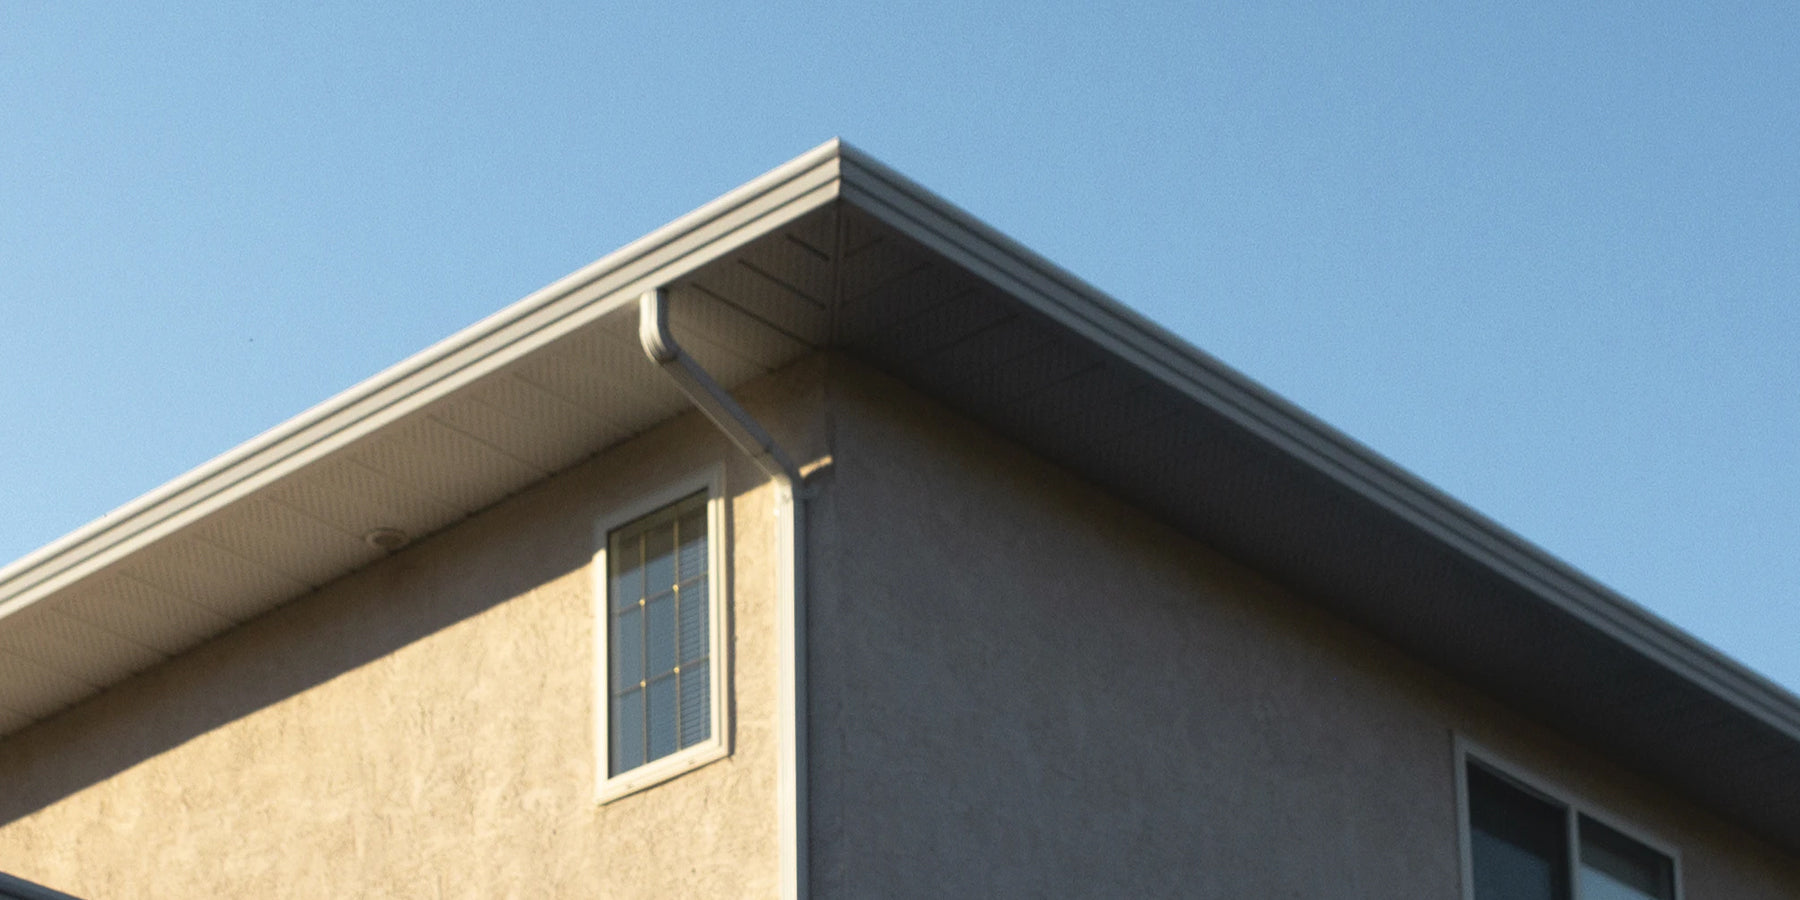 building facade with blue clear sky on the back. Shot highlights building's gutter system.